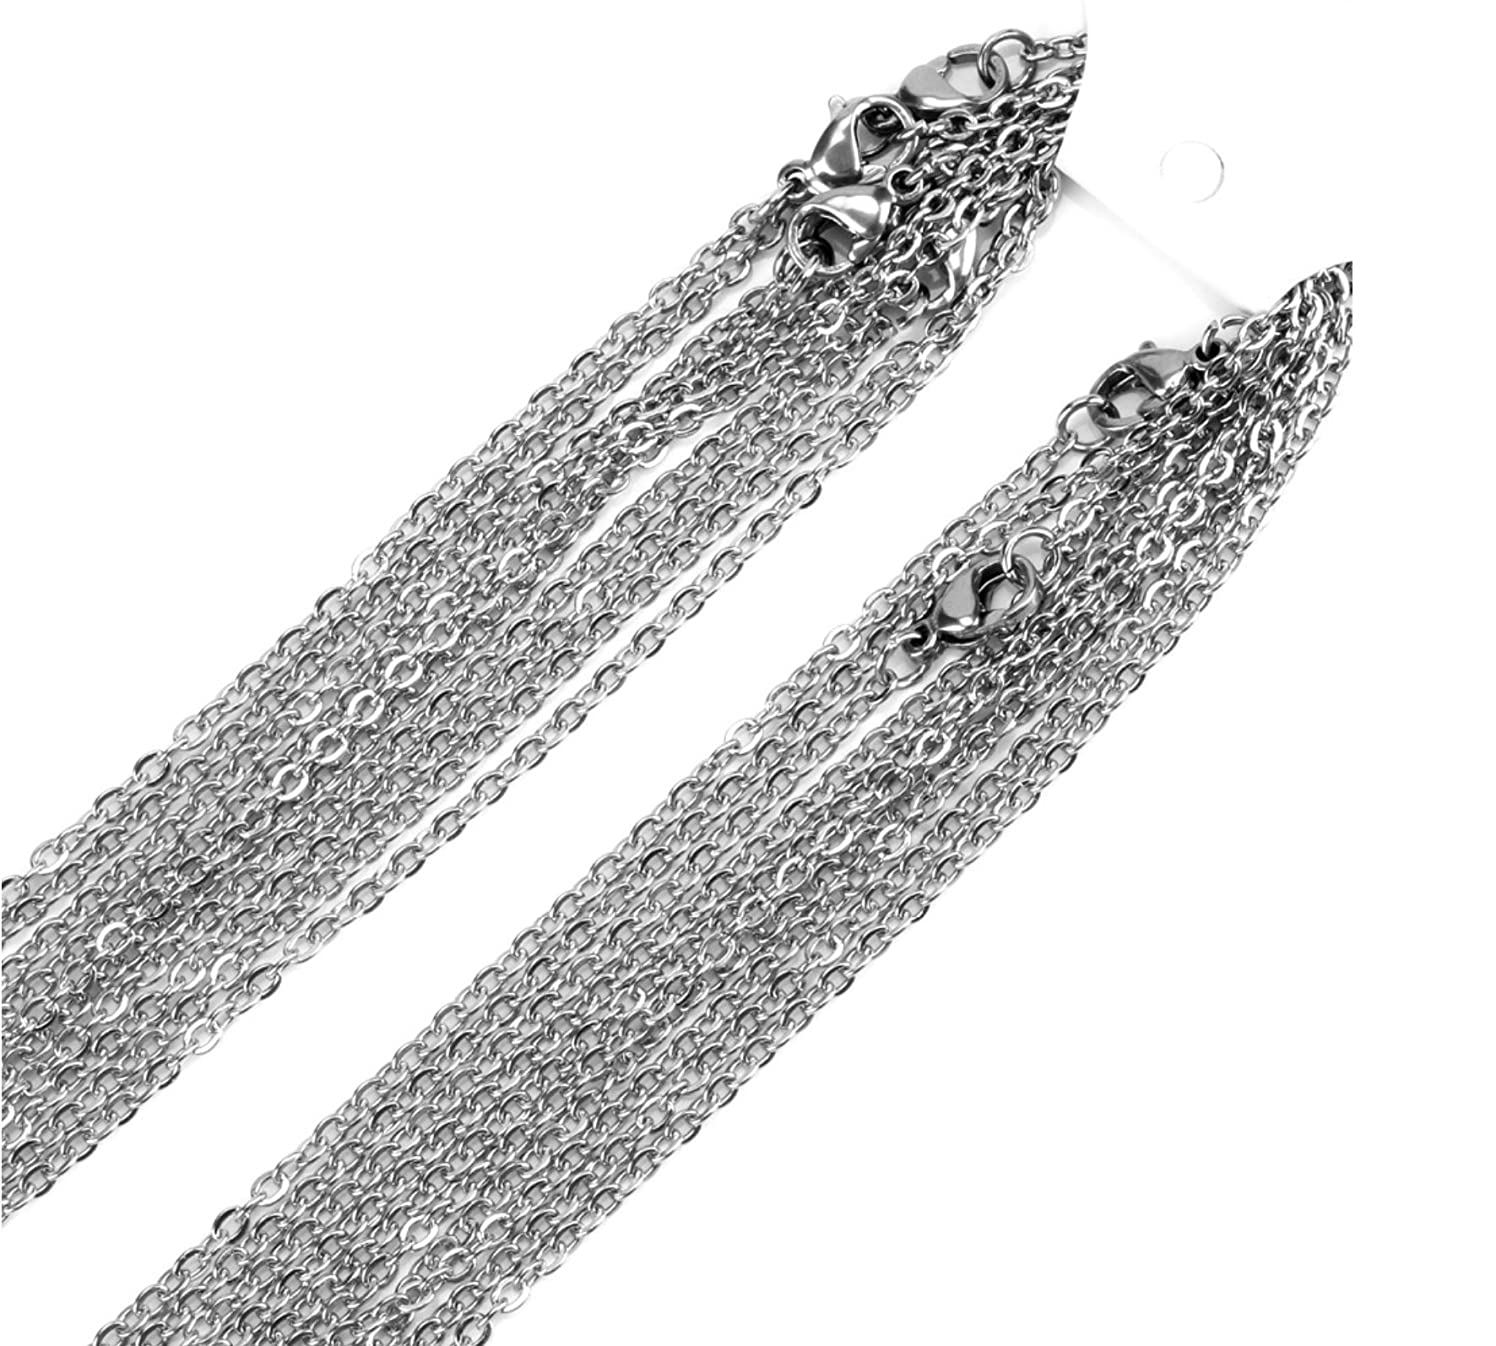 Cable Chains - Stainless Steel Finished Necklaces - Quantity 20 - Silver Tone (3mm, 18